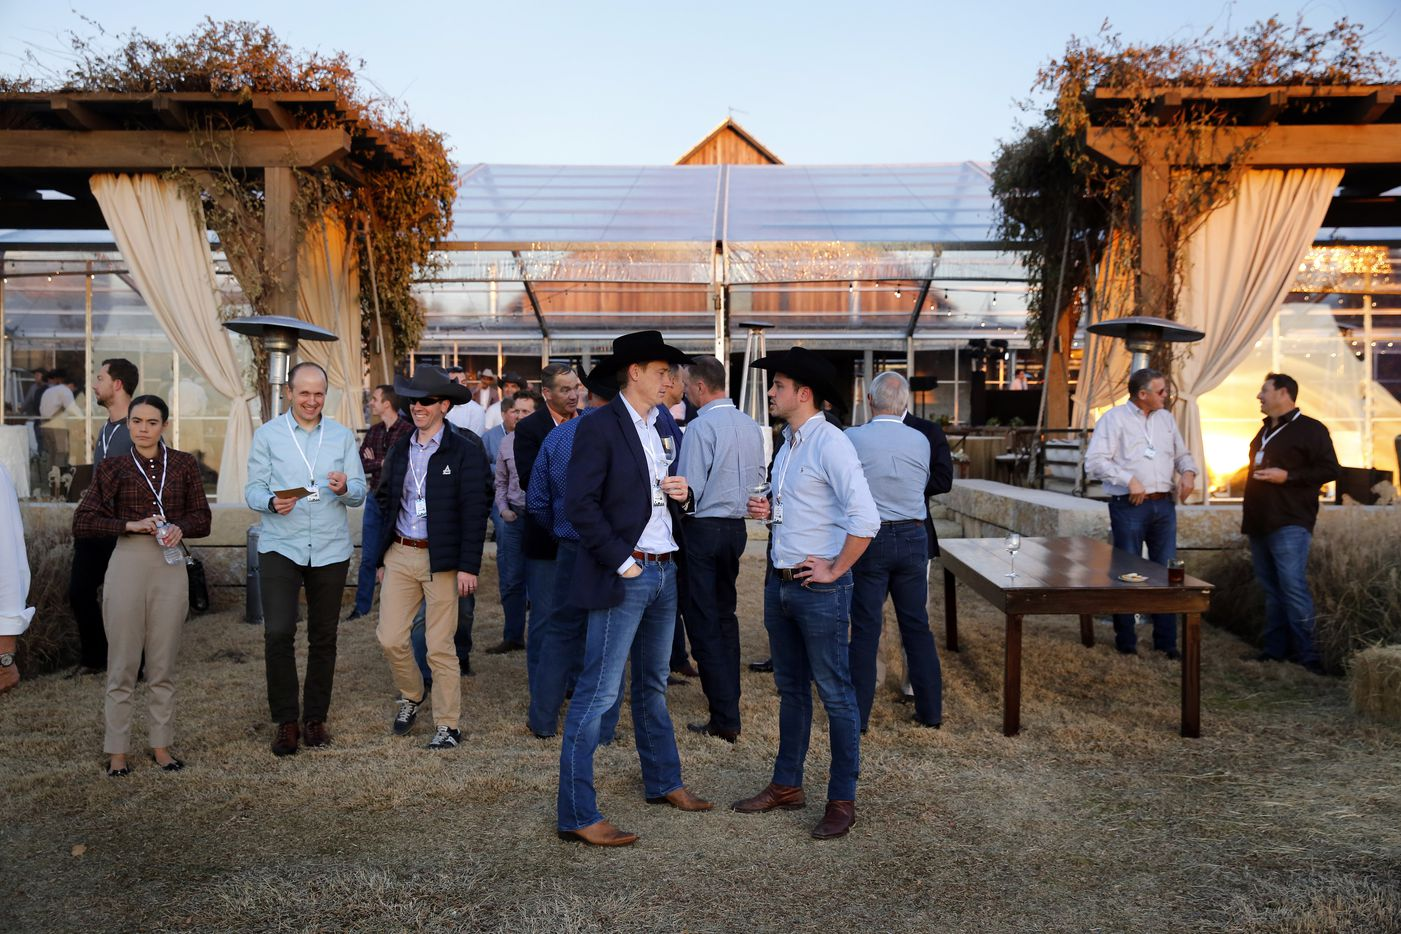 Business leaders, investors and aviation executives gathered for a military flyover during opening night of Texas UP. The private summit had Texas touches, including fittings of cowboy hats and photo ops with a longhorn. (Tom Fox/The Dallas Morning News)